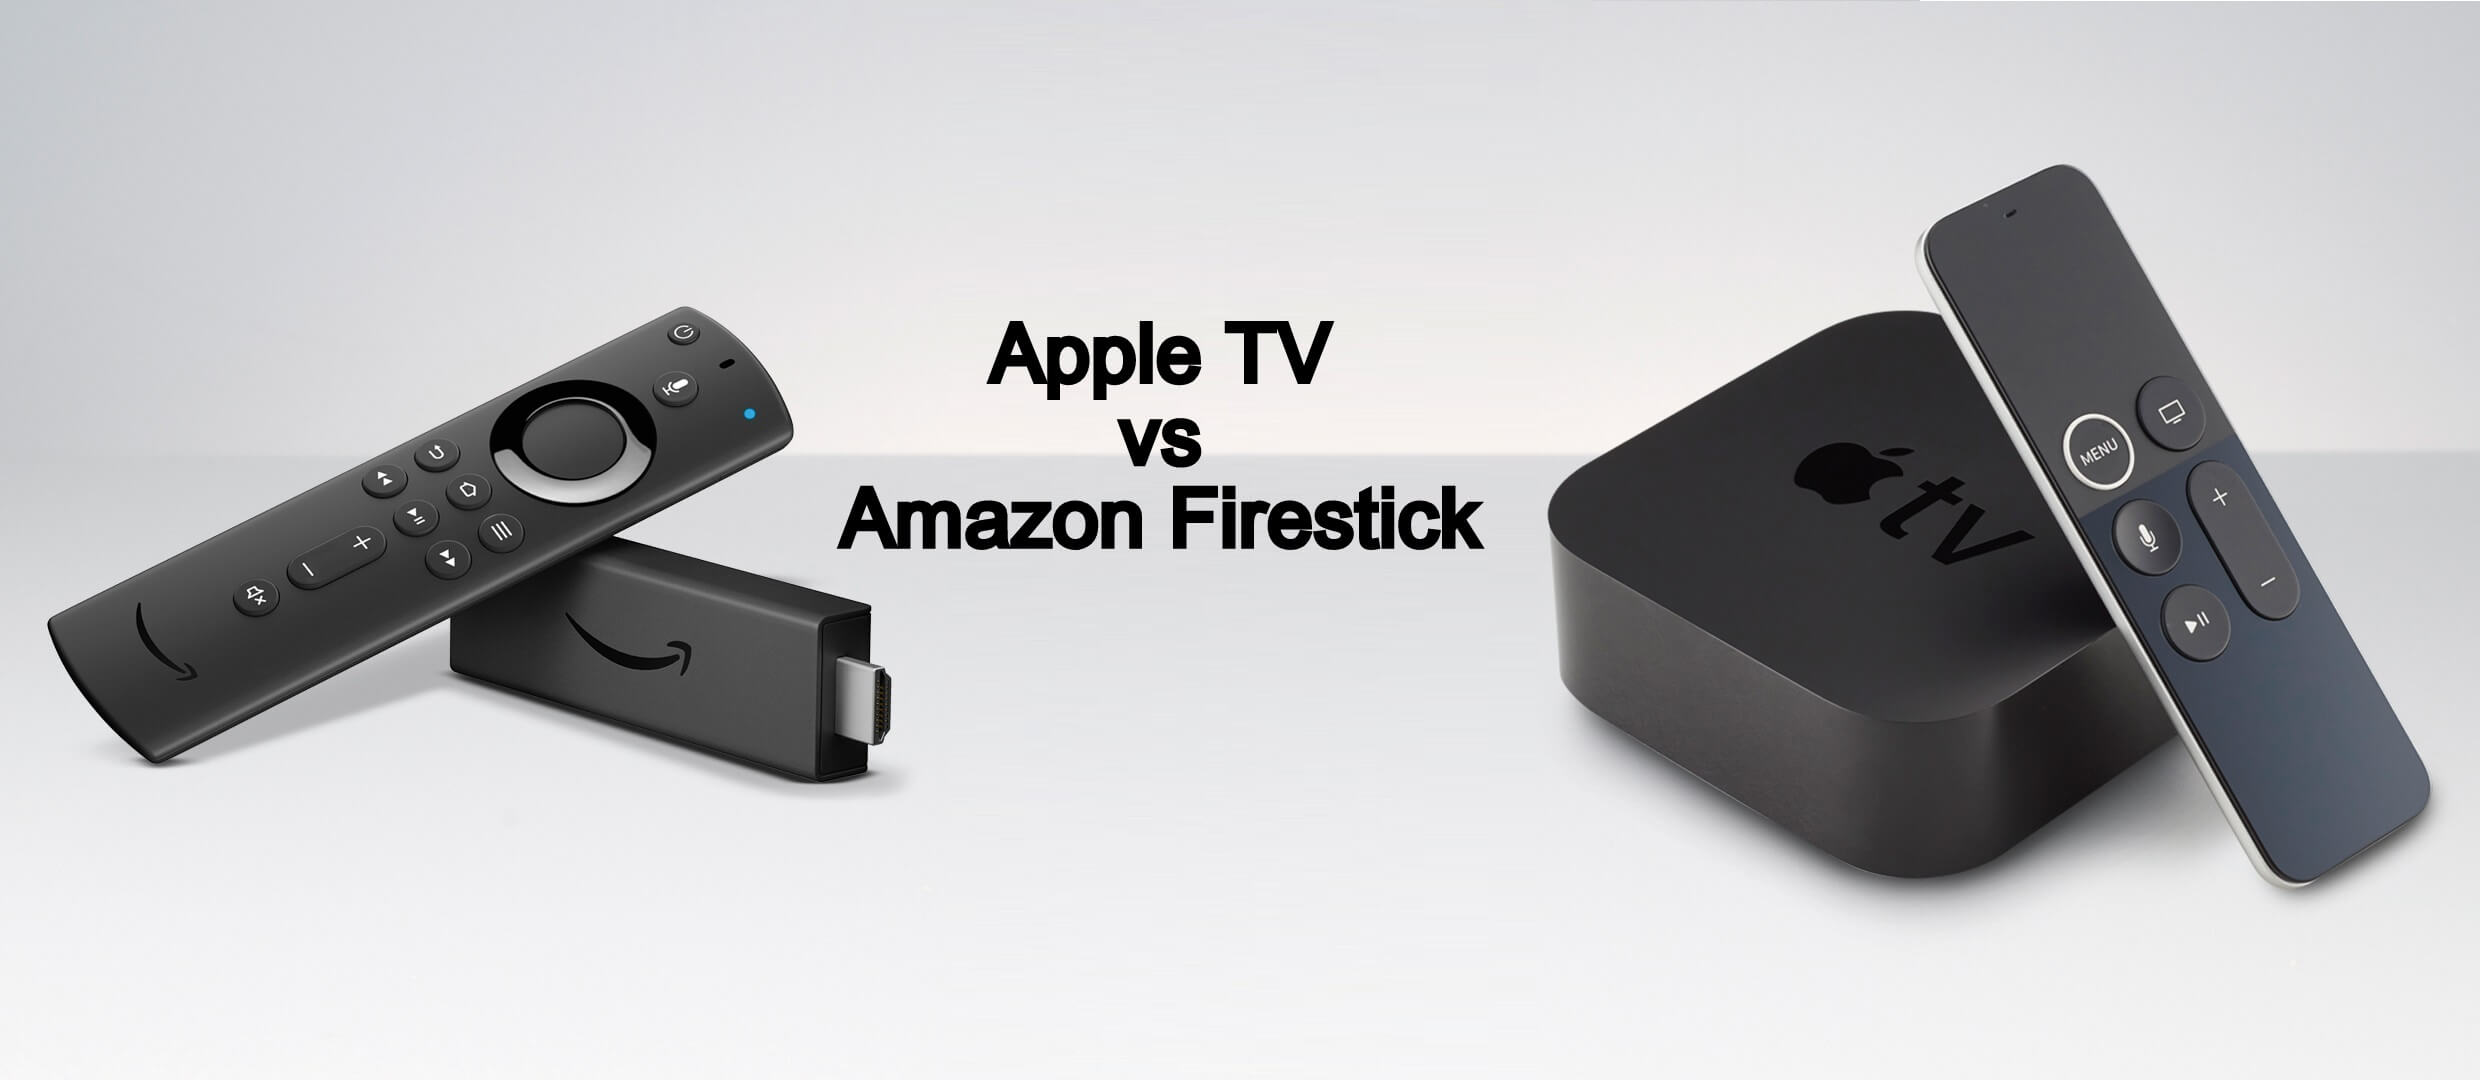 Apple TV vs Amazon Firestick